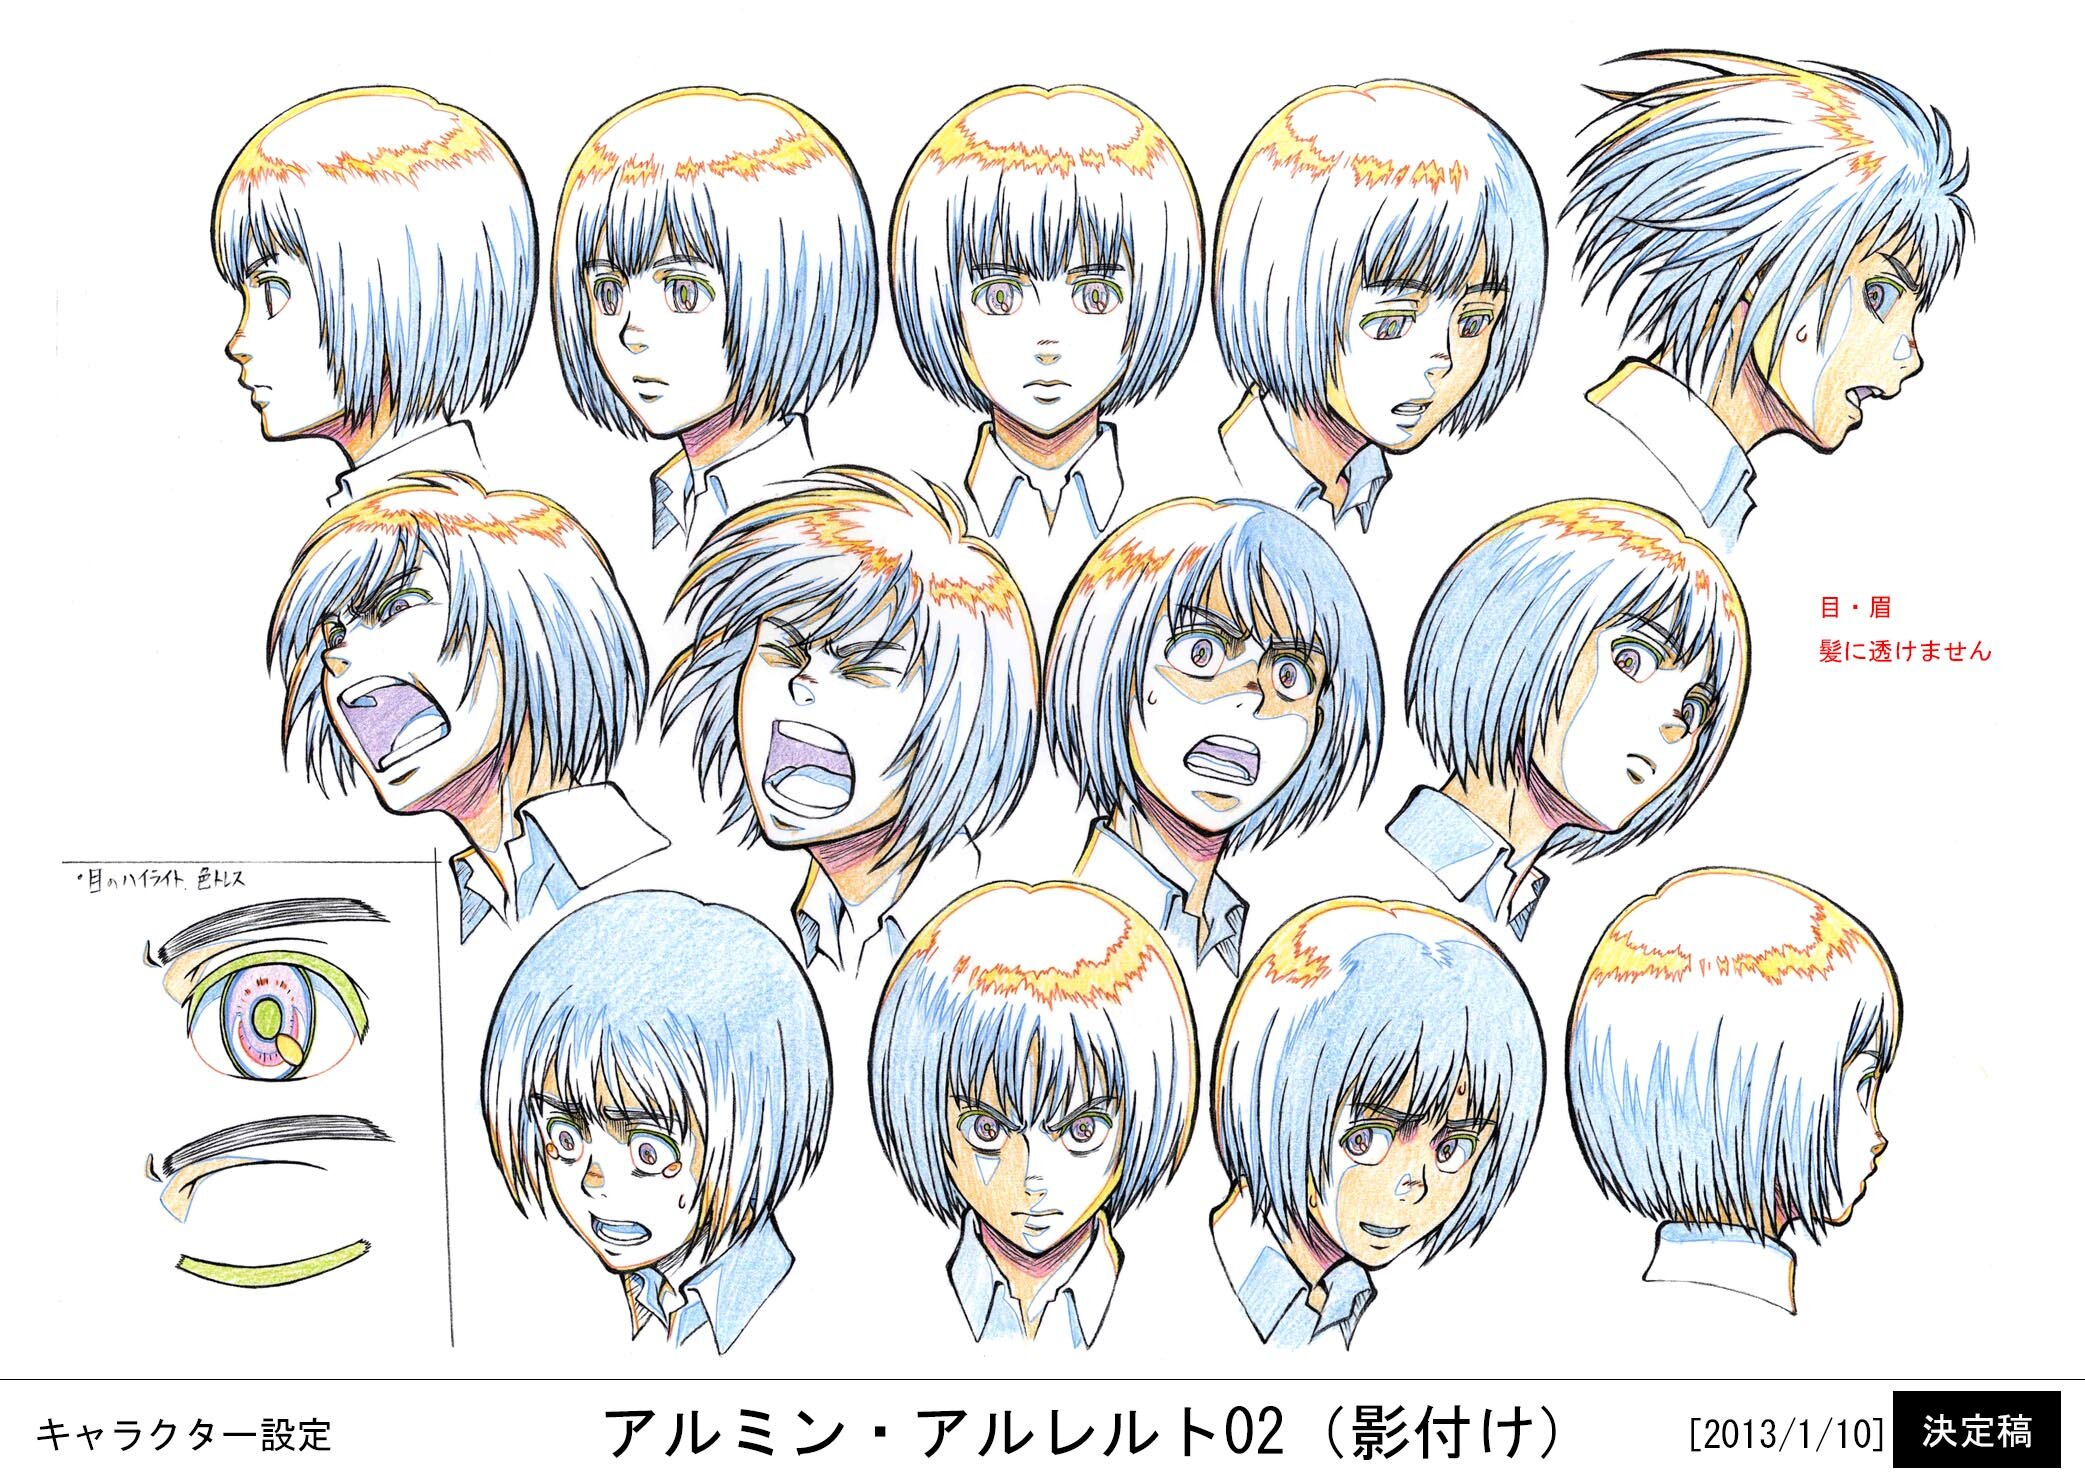 Art Of Attack On Titan Part 1 Characters within each group are listed in order of appearance. art of attack on titan part 1